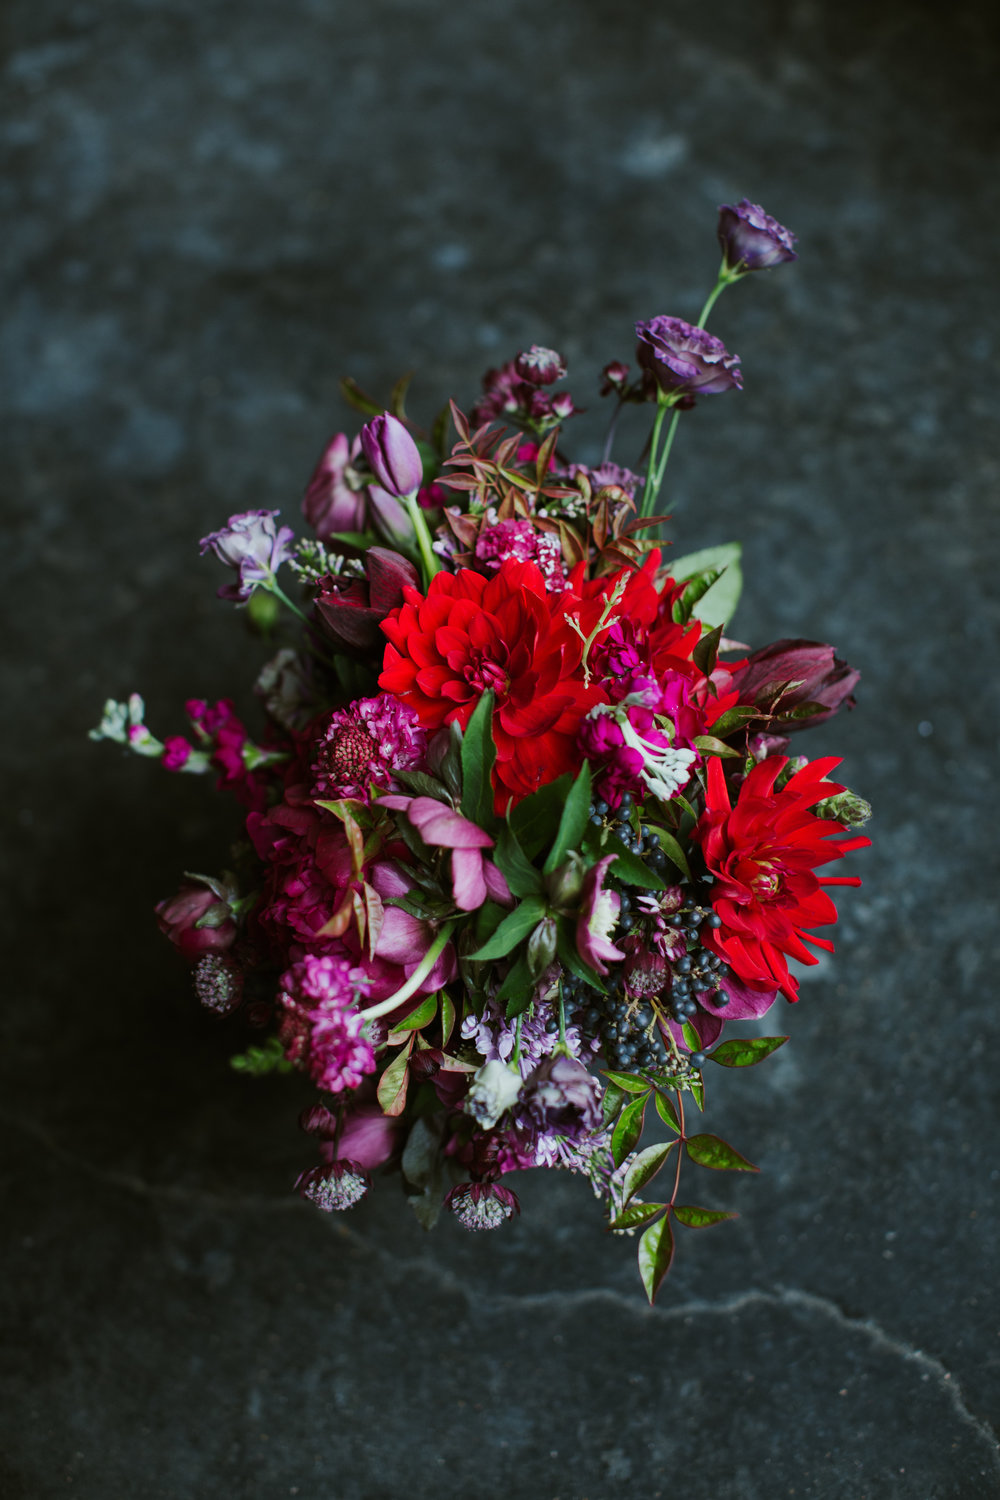 Paige-Newton-Intimate-Wedding-Photography-Malverde-Wedding-Florist.jpg.jpg